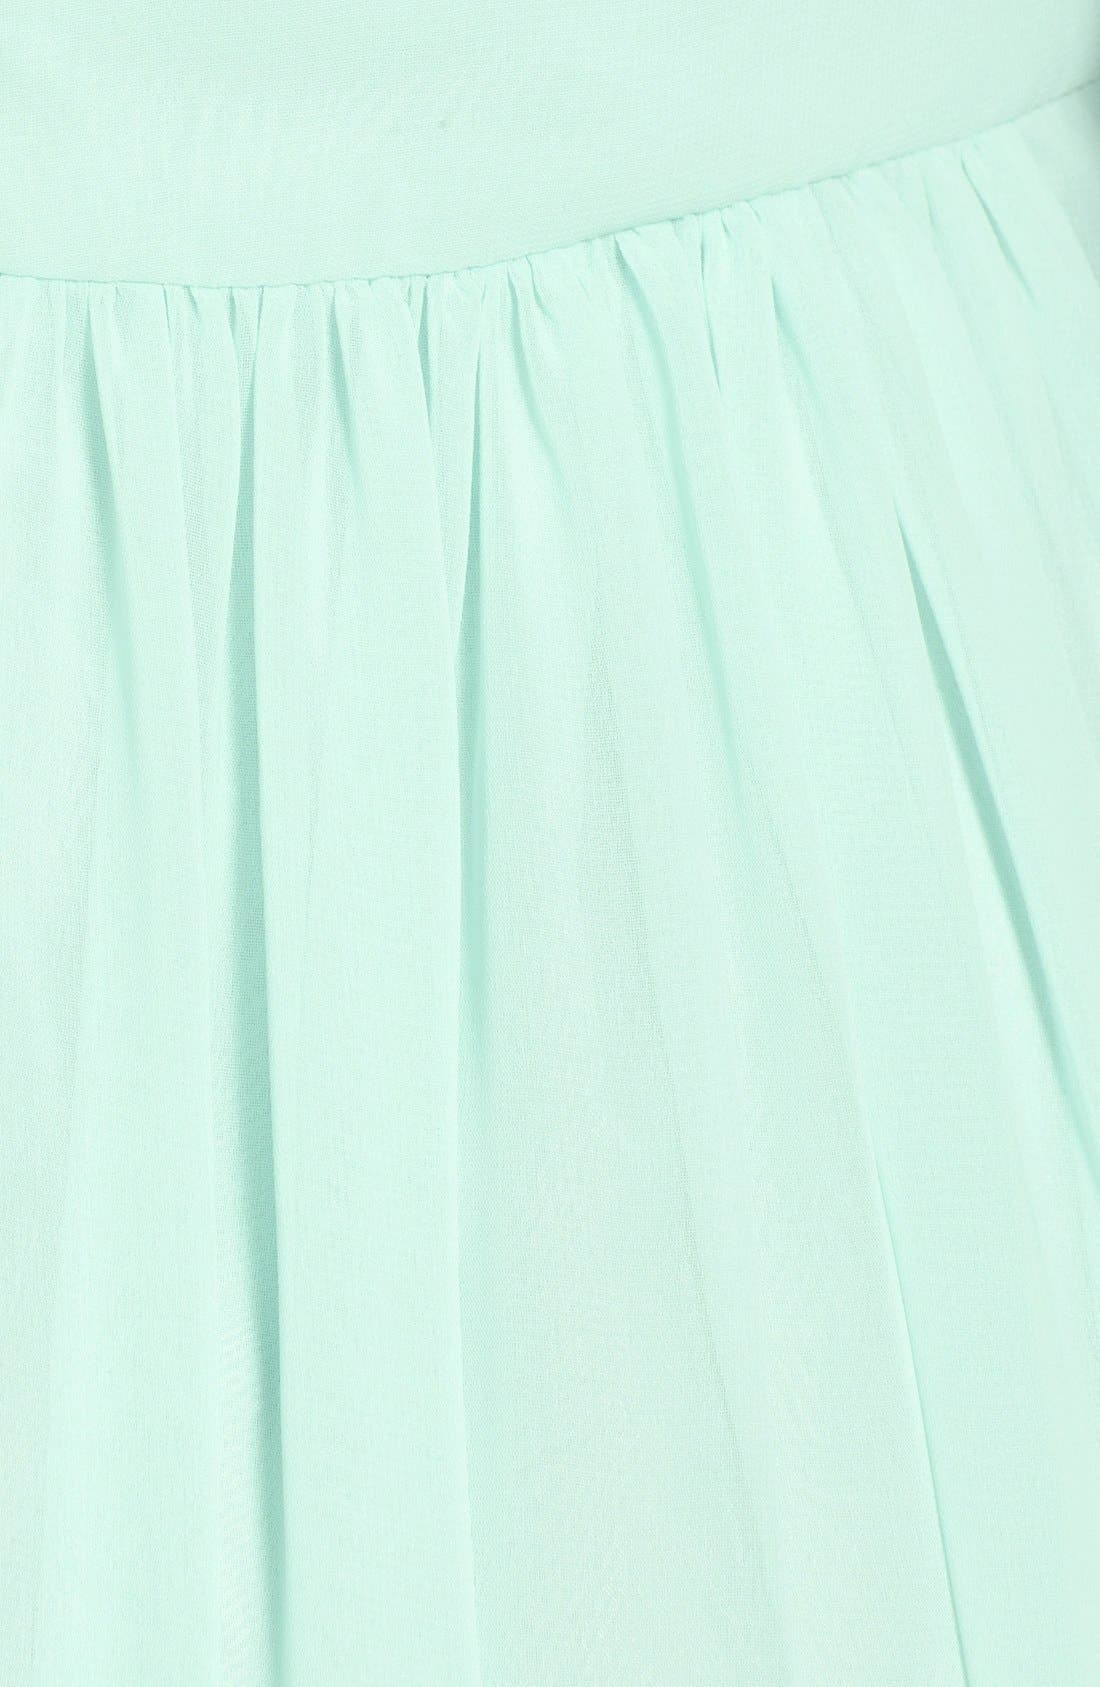 Alternate Image 3  - Monique Lhuillier Bridesmaids Crisscross Chiffon Gown (Nordstrom Exclusive)